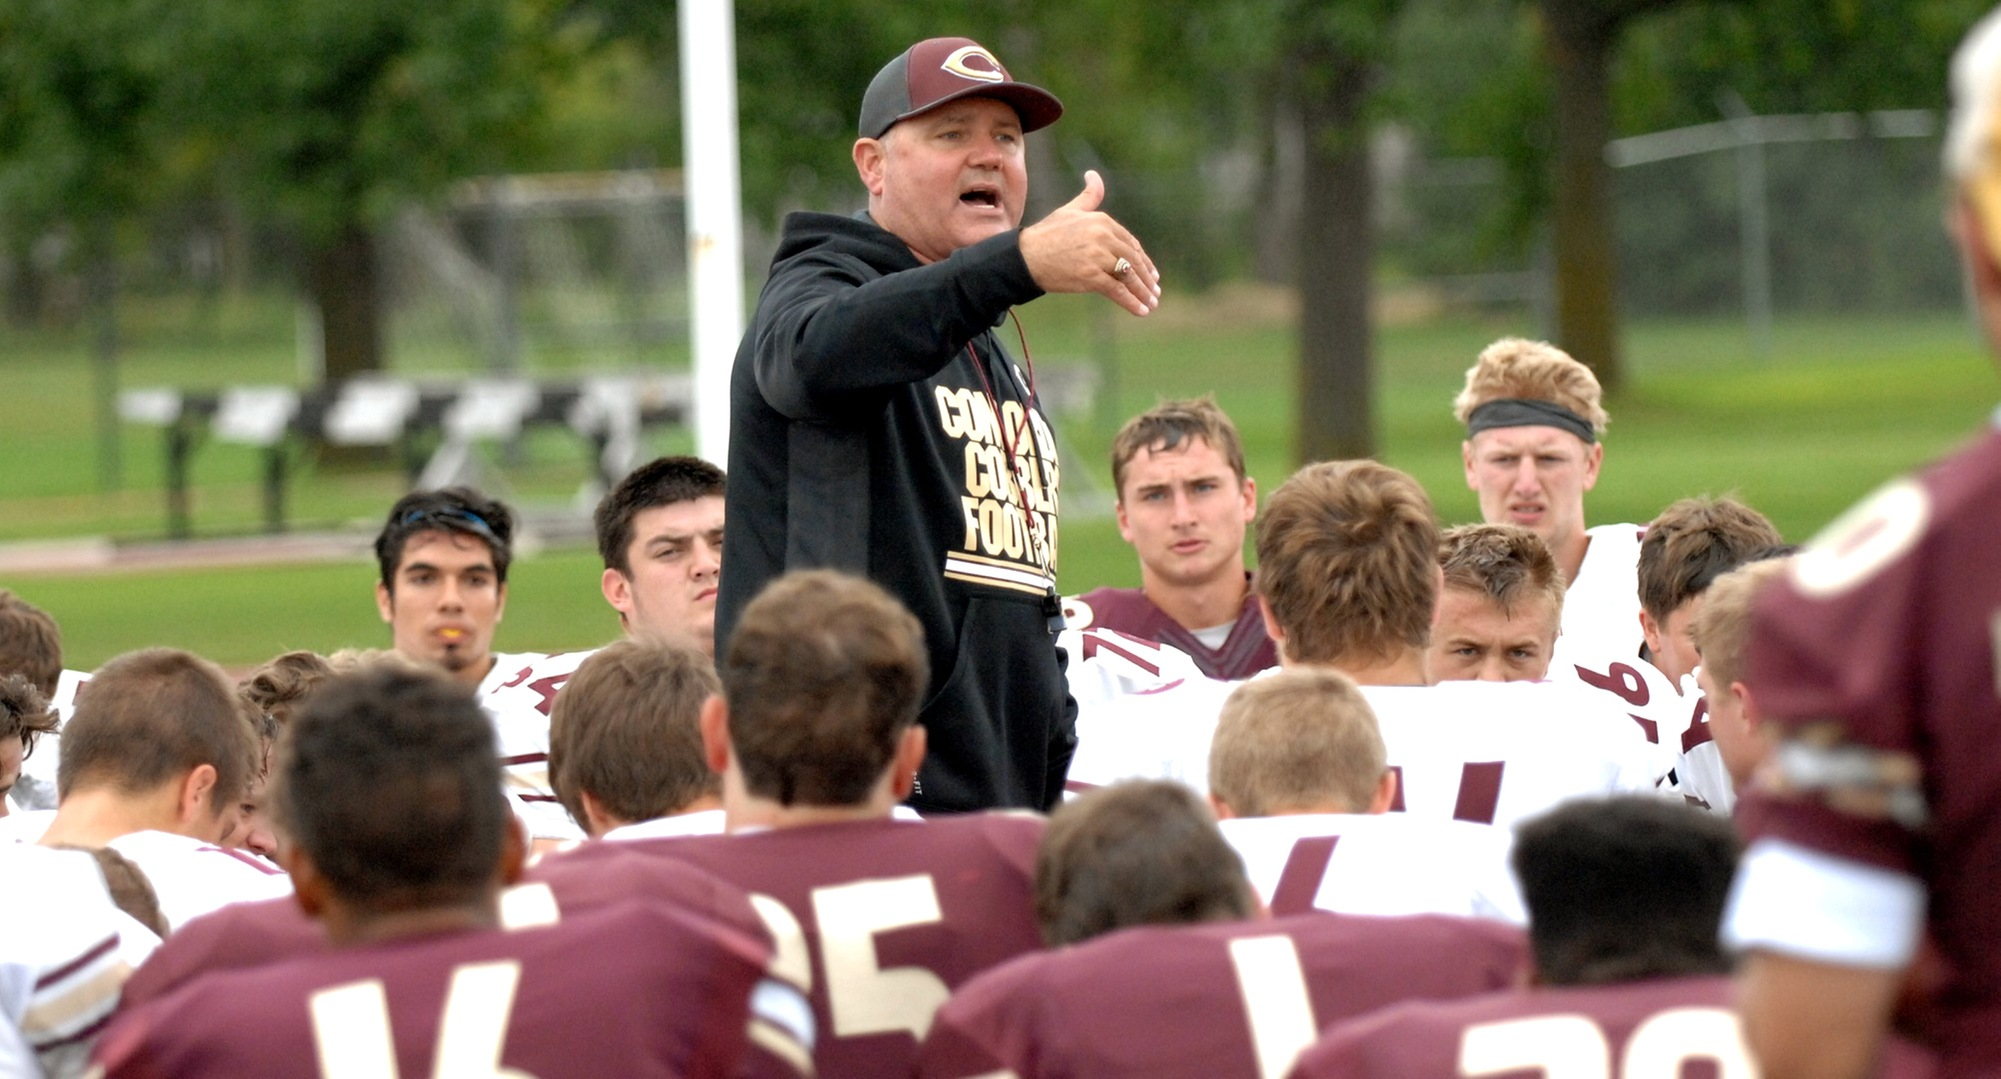 Concordia head coach Terry Horan has come up with a new way to host recruiting days for the Cobbers.